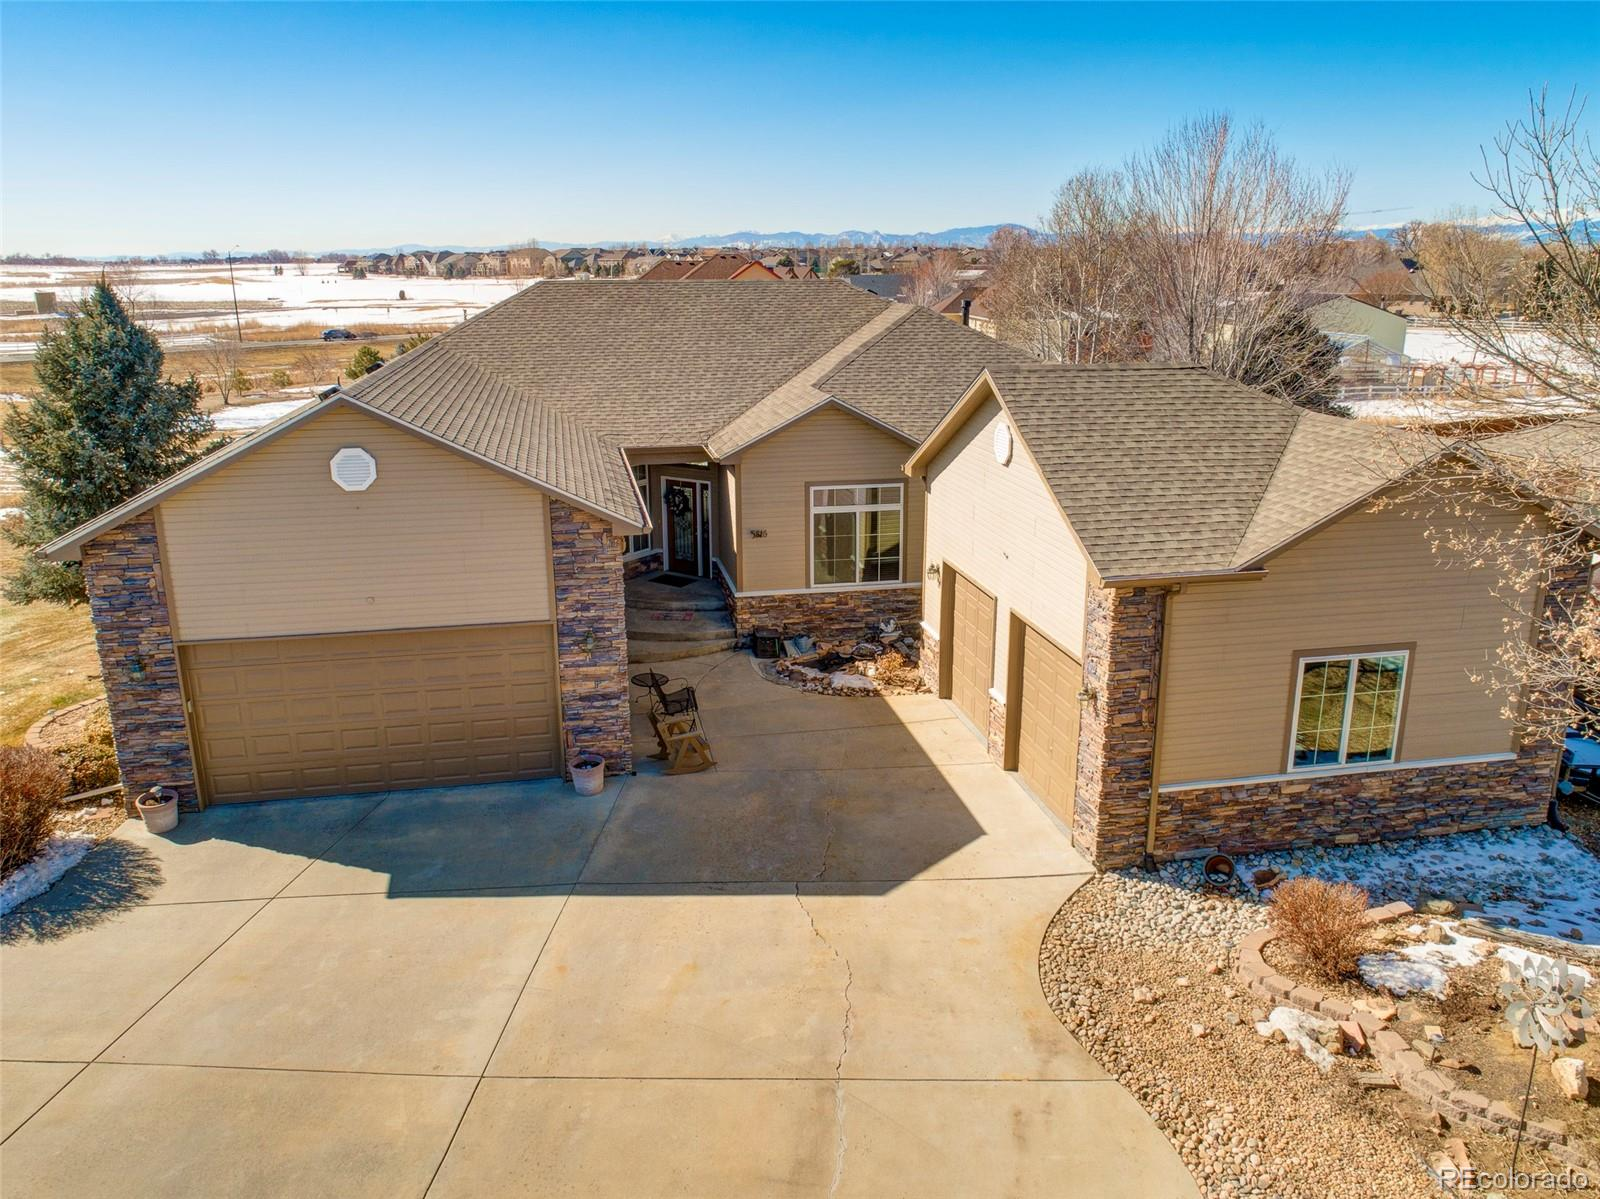 MLS# 7126152 - 2 - 5816 W Conservation Drive, Frederick, CO 80504